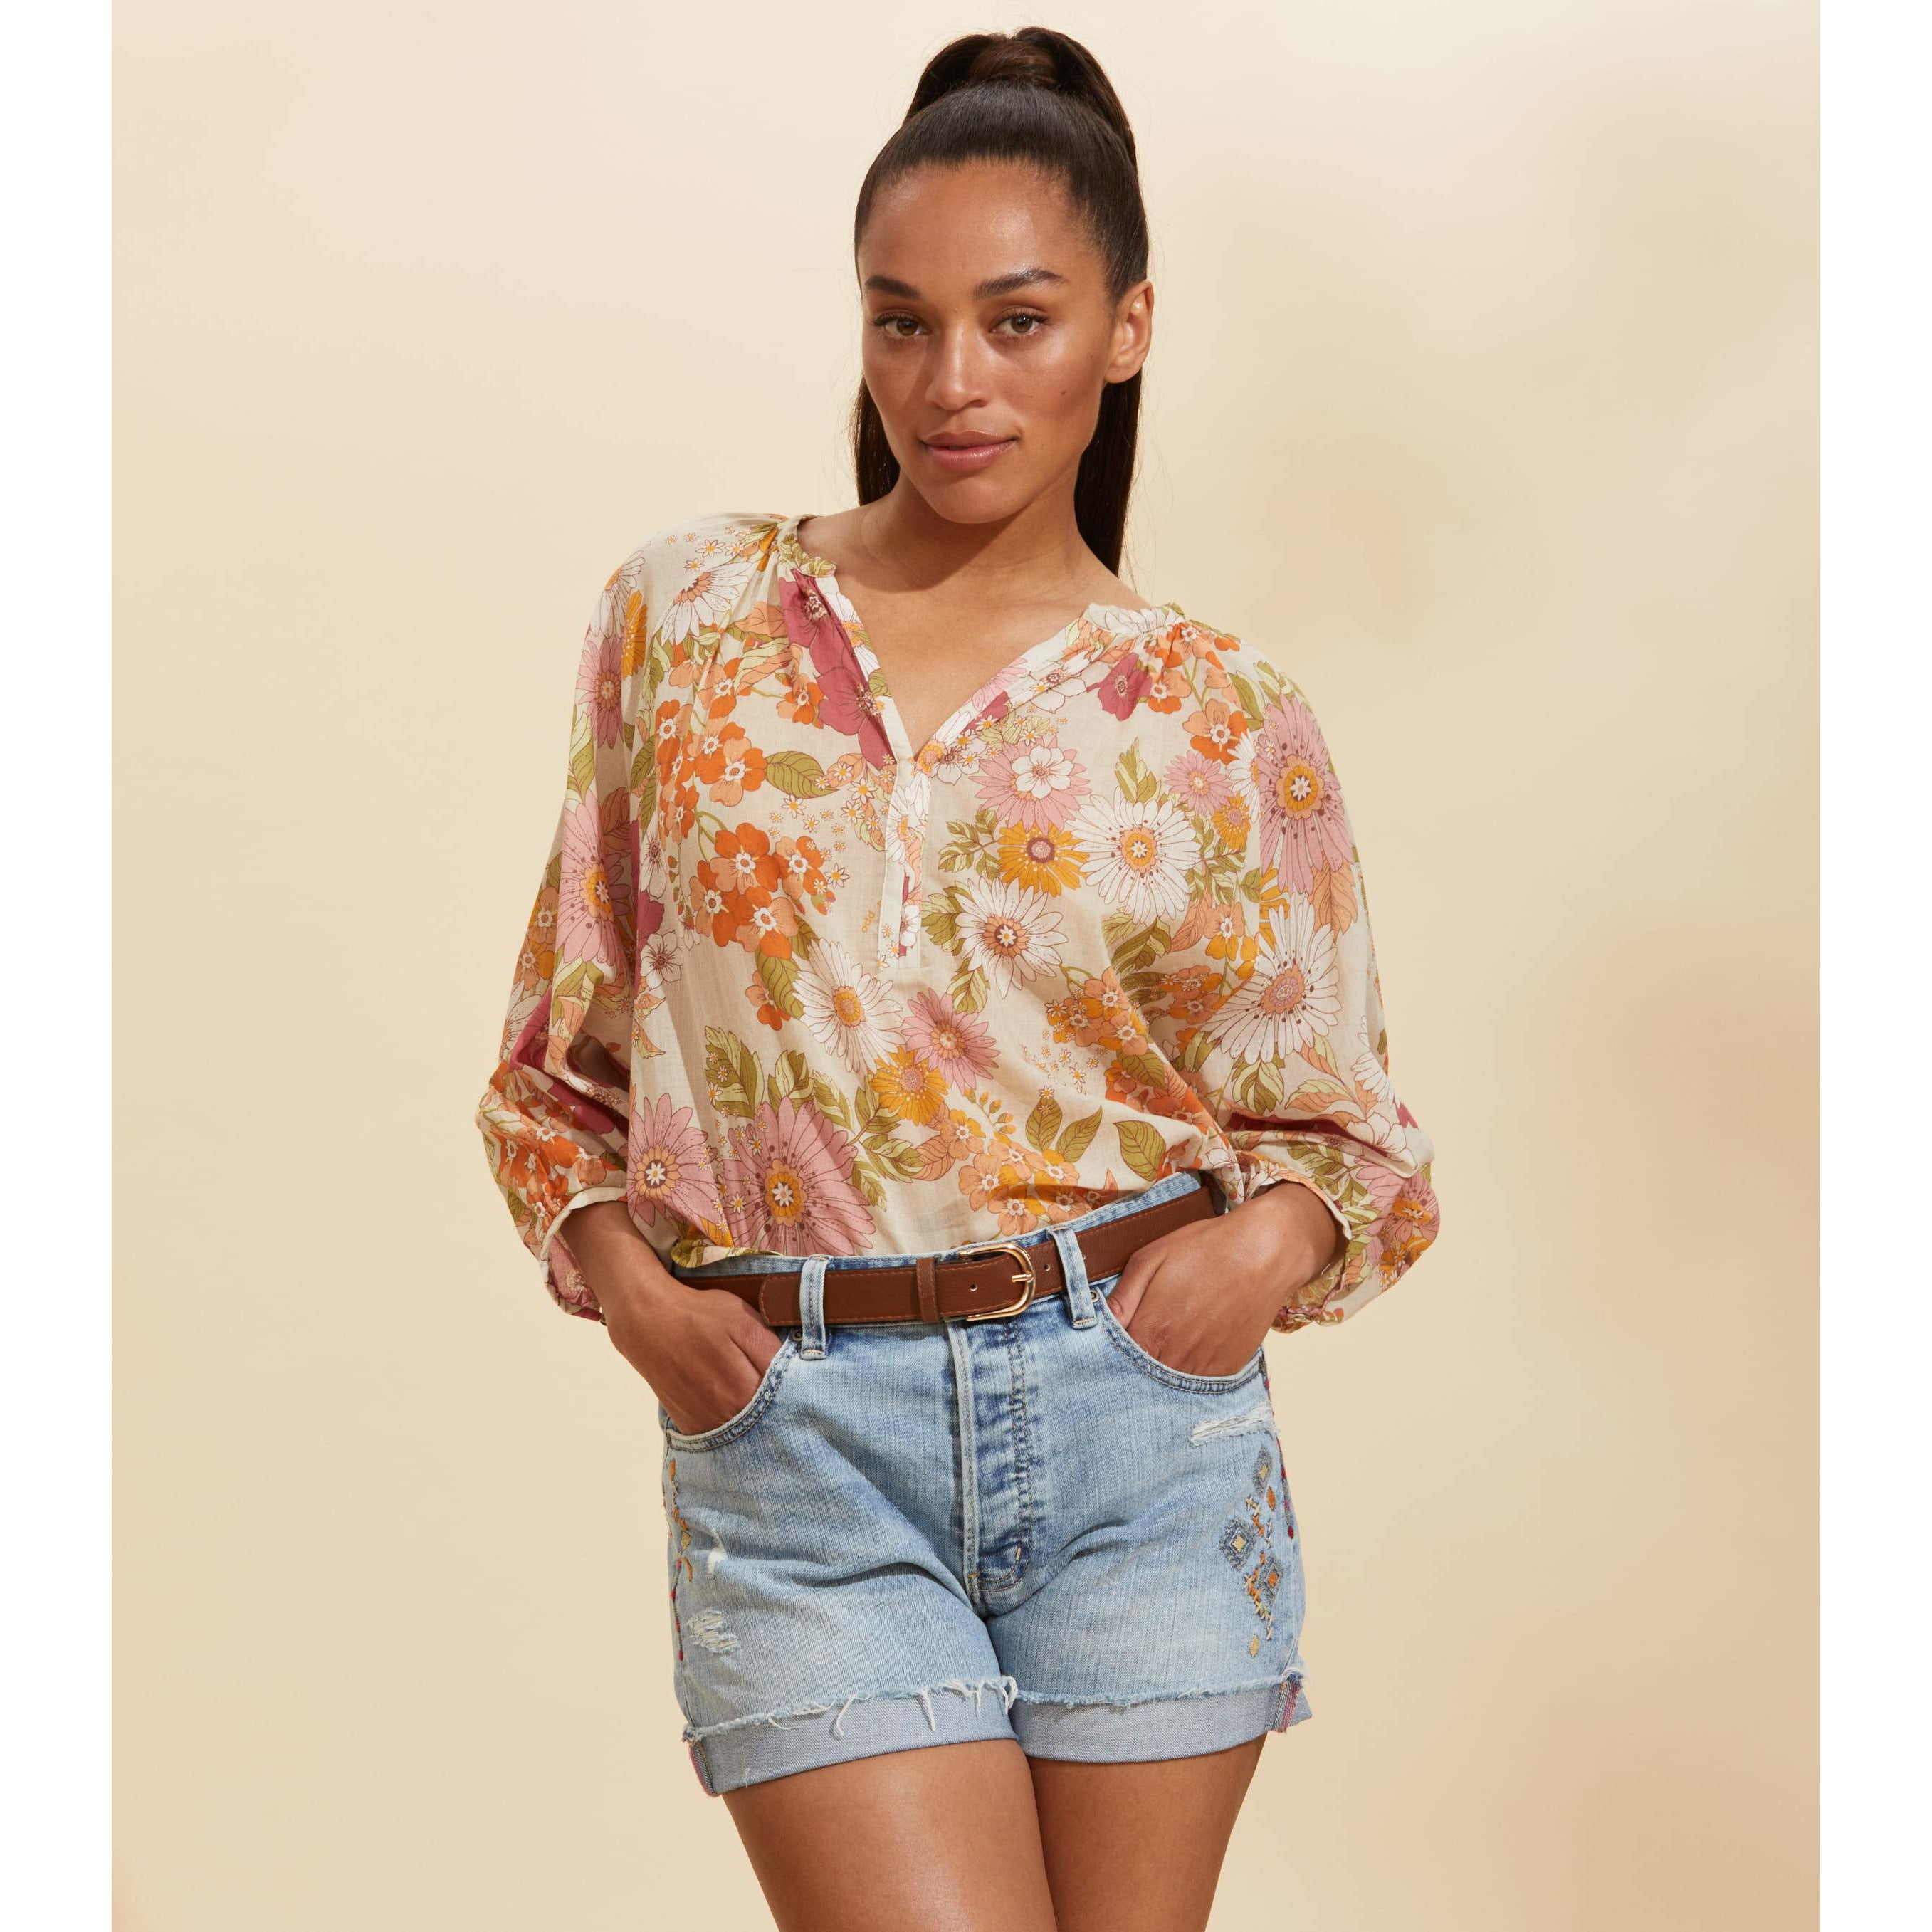 Odd Molly Run with the Sun Cactus Flower Blouse